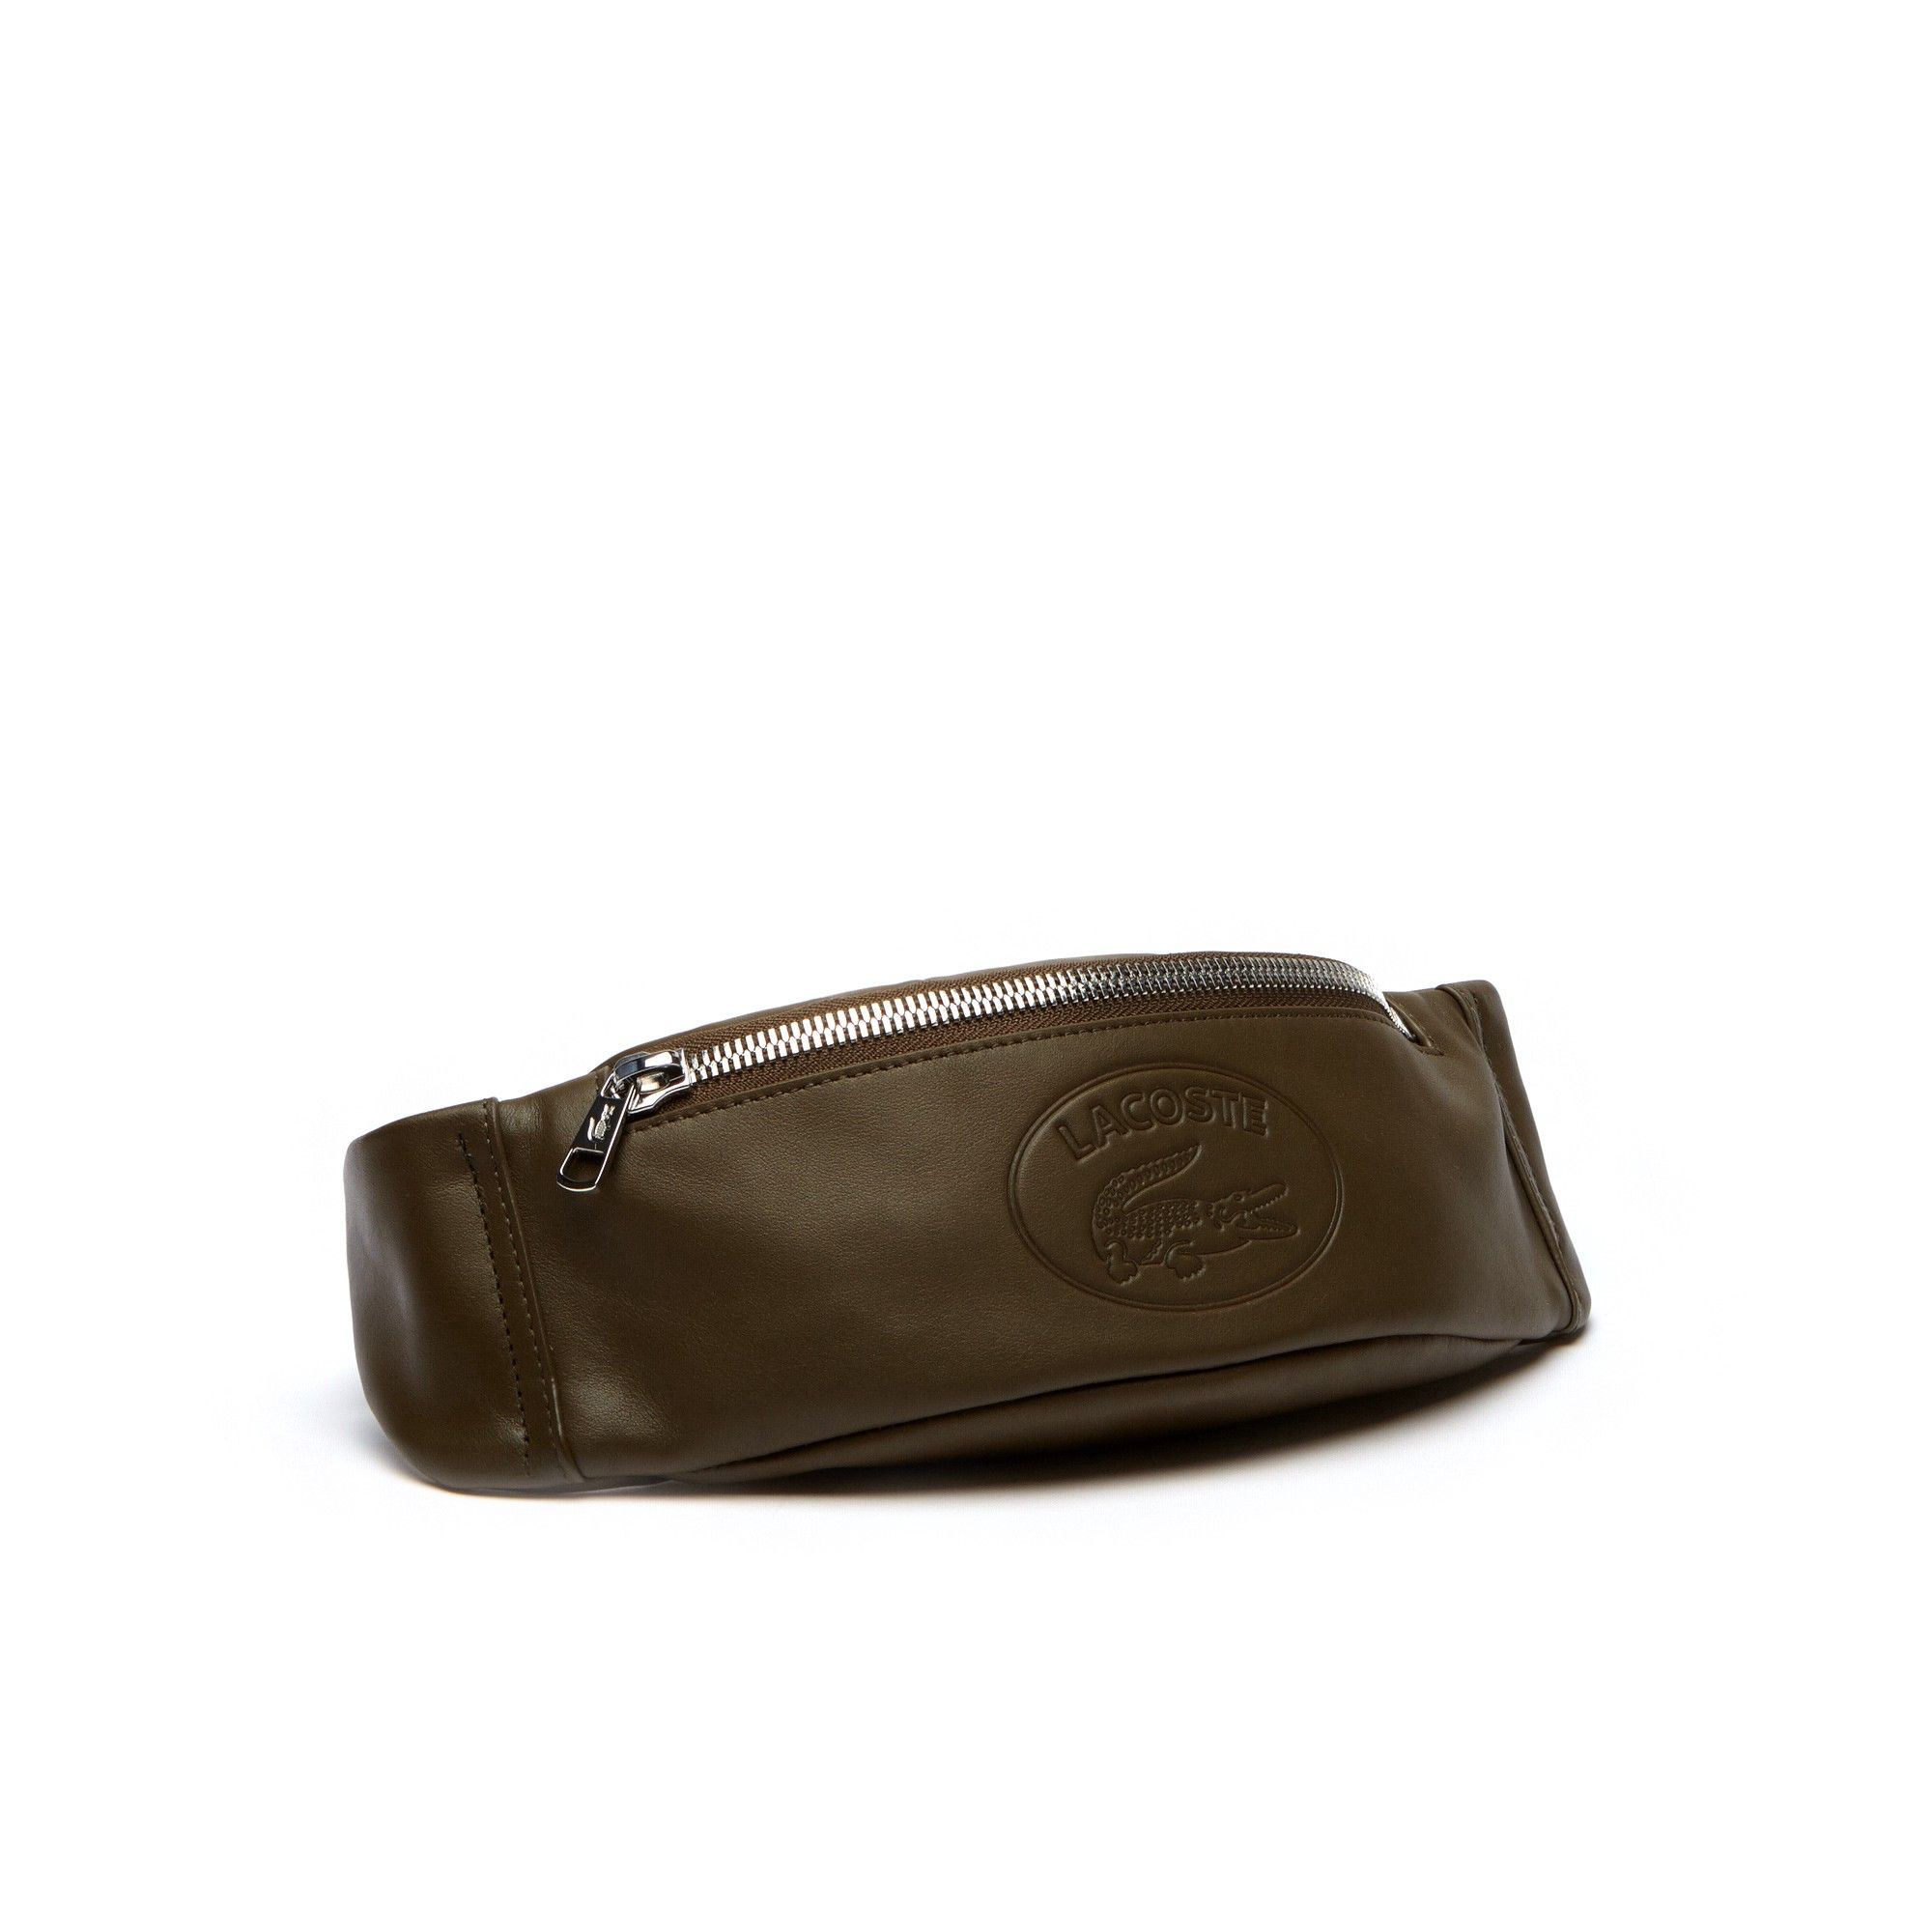 19a3b2519fa3 Lacoste Men s L.12.12 Casual Embossed Lettering Leather Zip Fanny Pack -  Military Olive